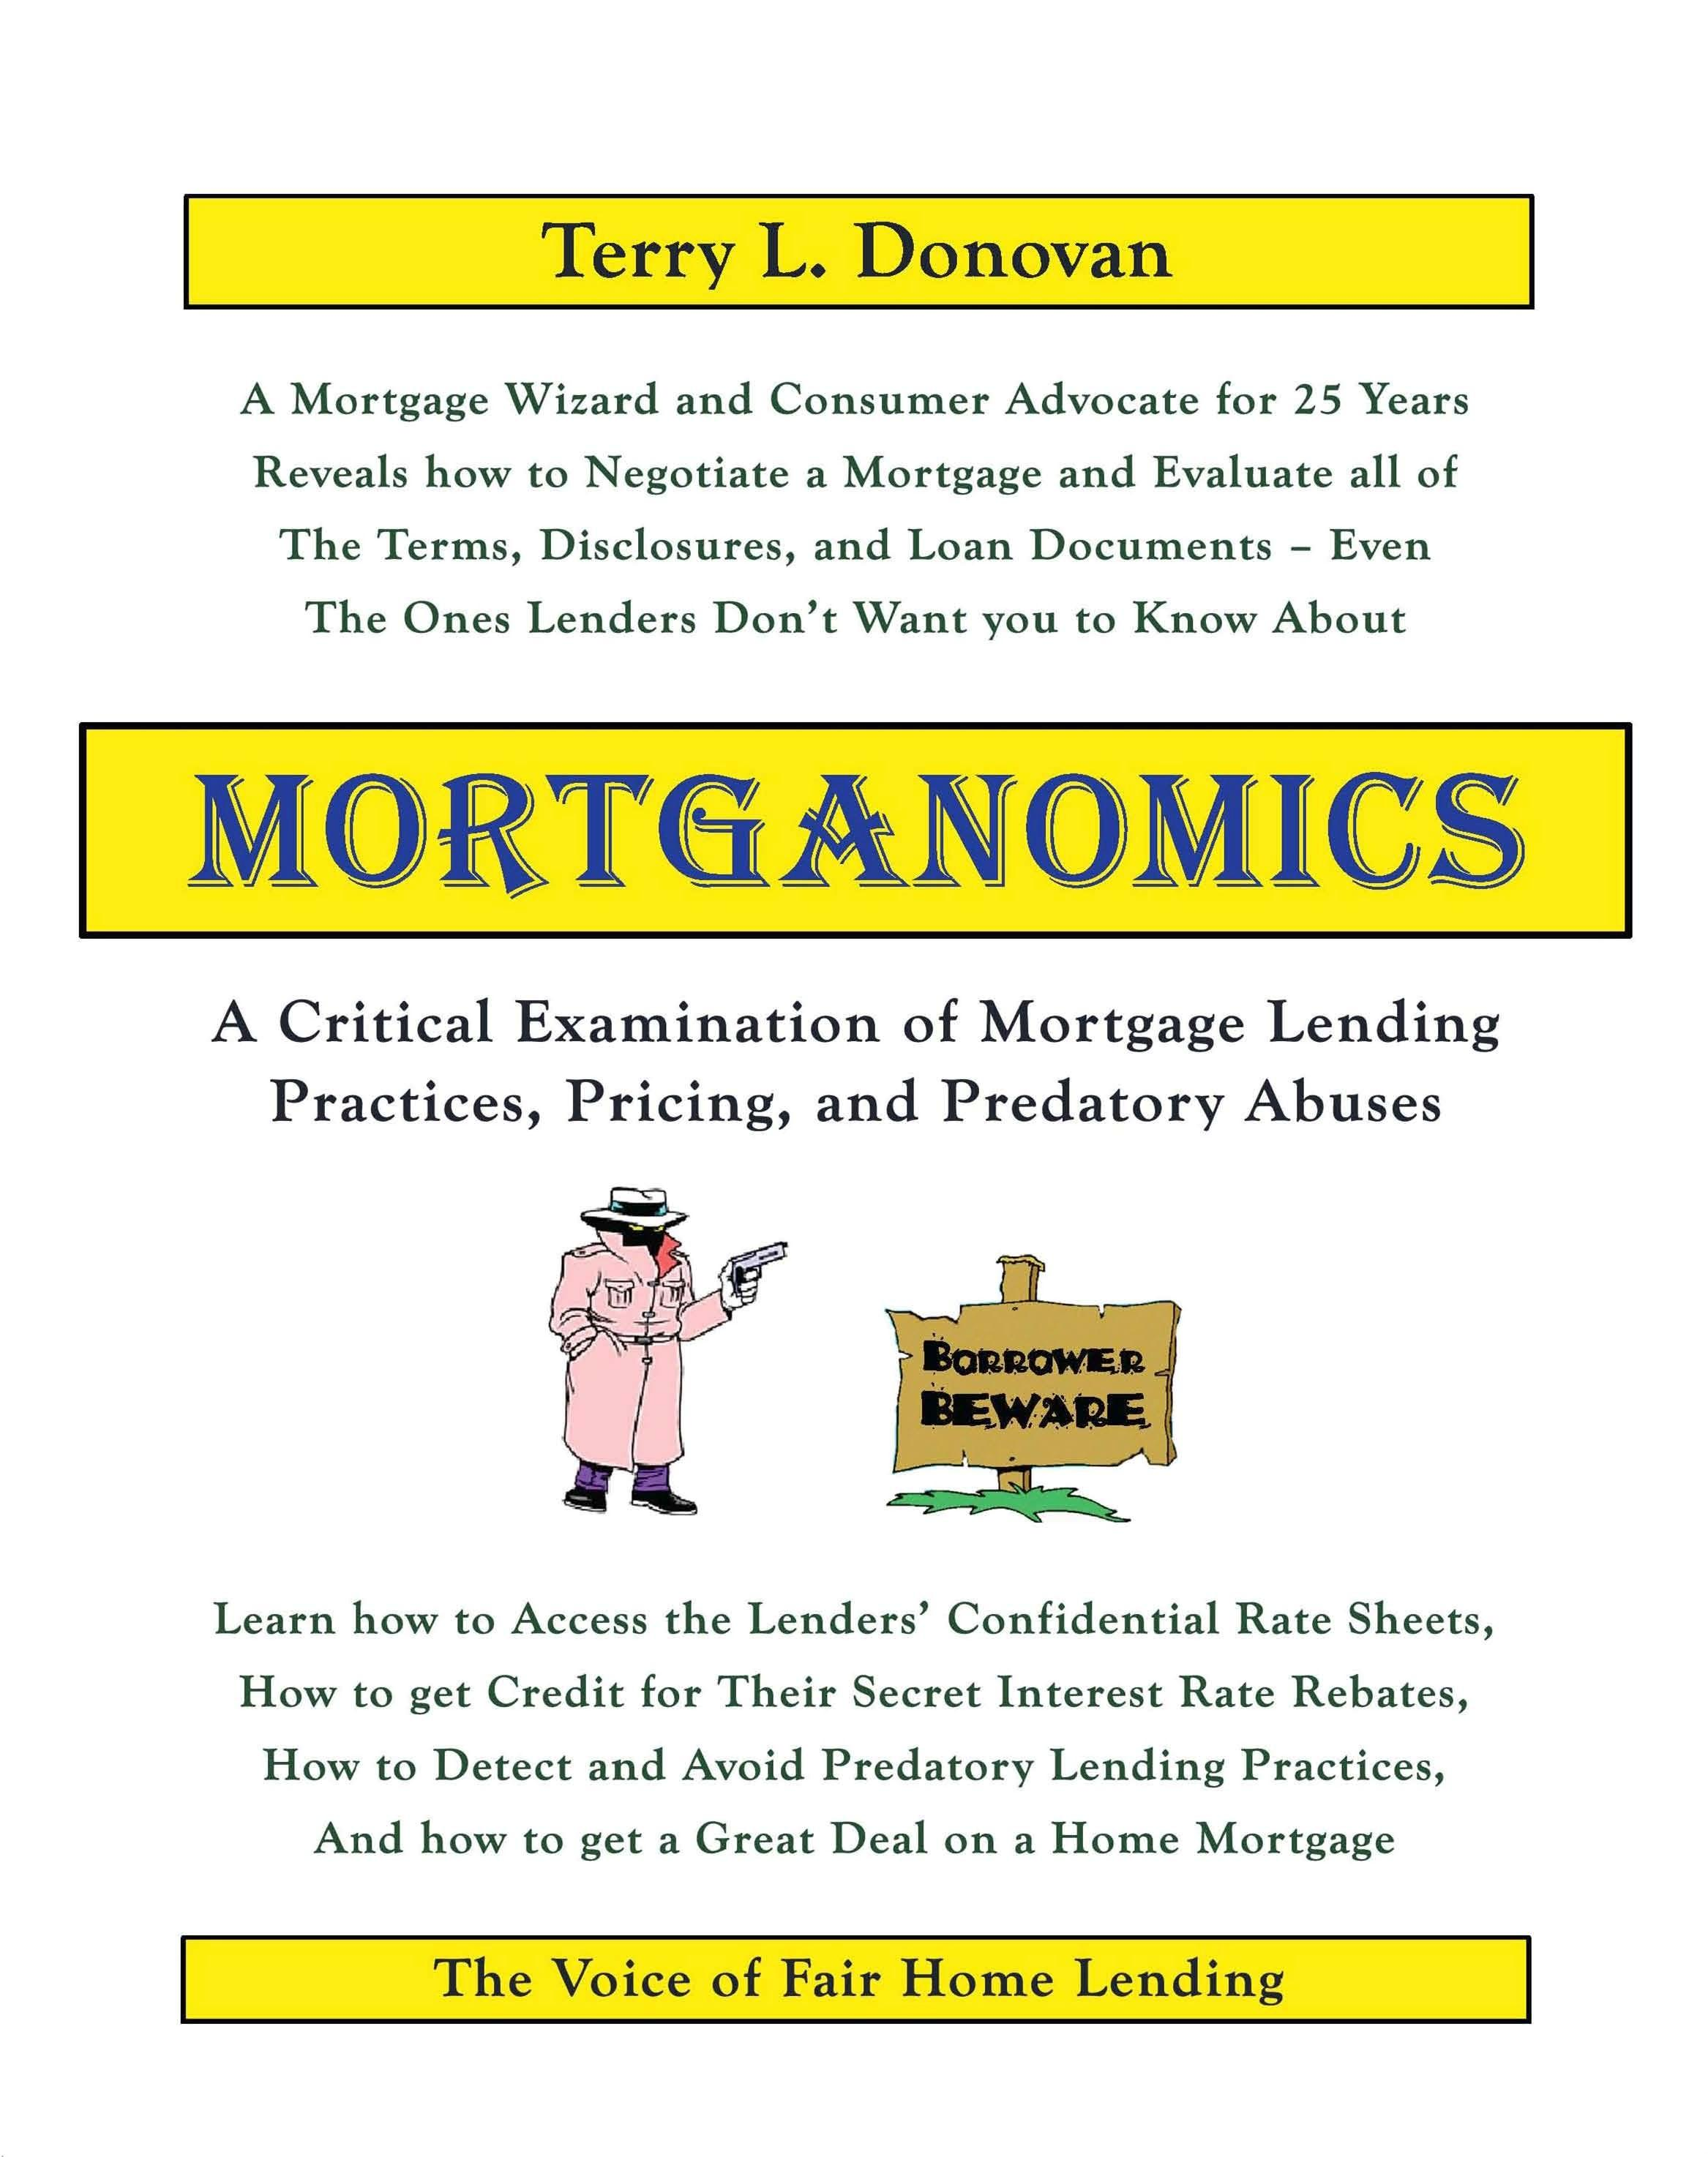 Mortganomics - A Critical Examination of Mortgage Lending Practices, Pricing, and Predatory Abuses EB9787770702730